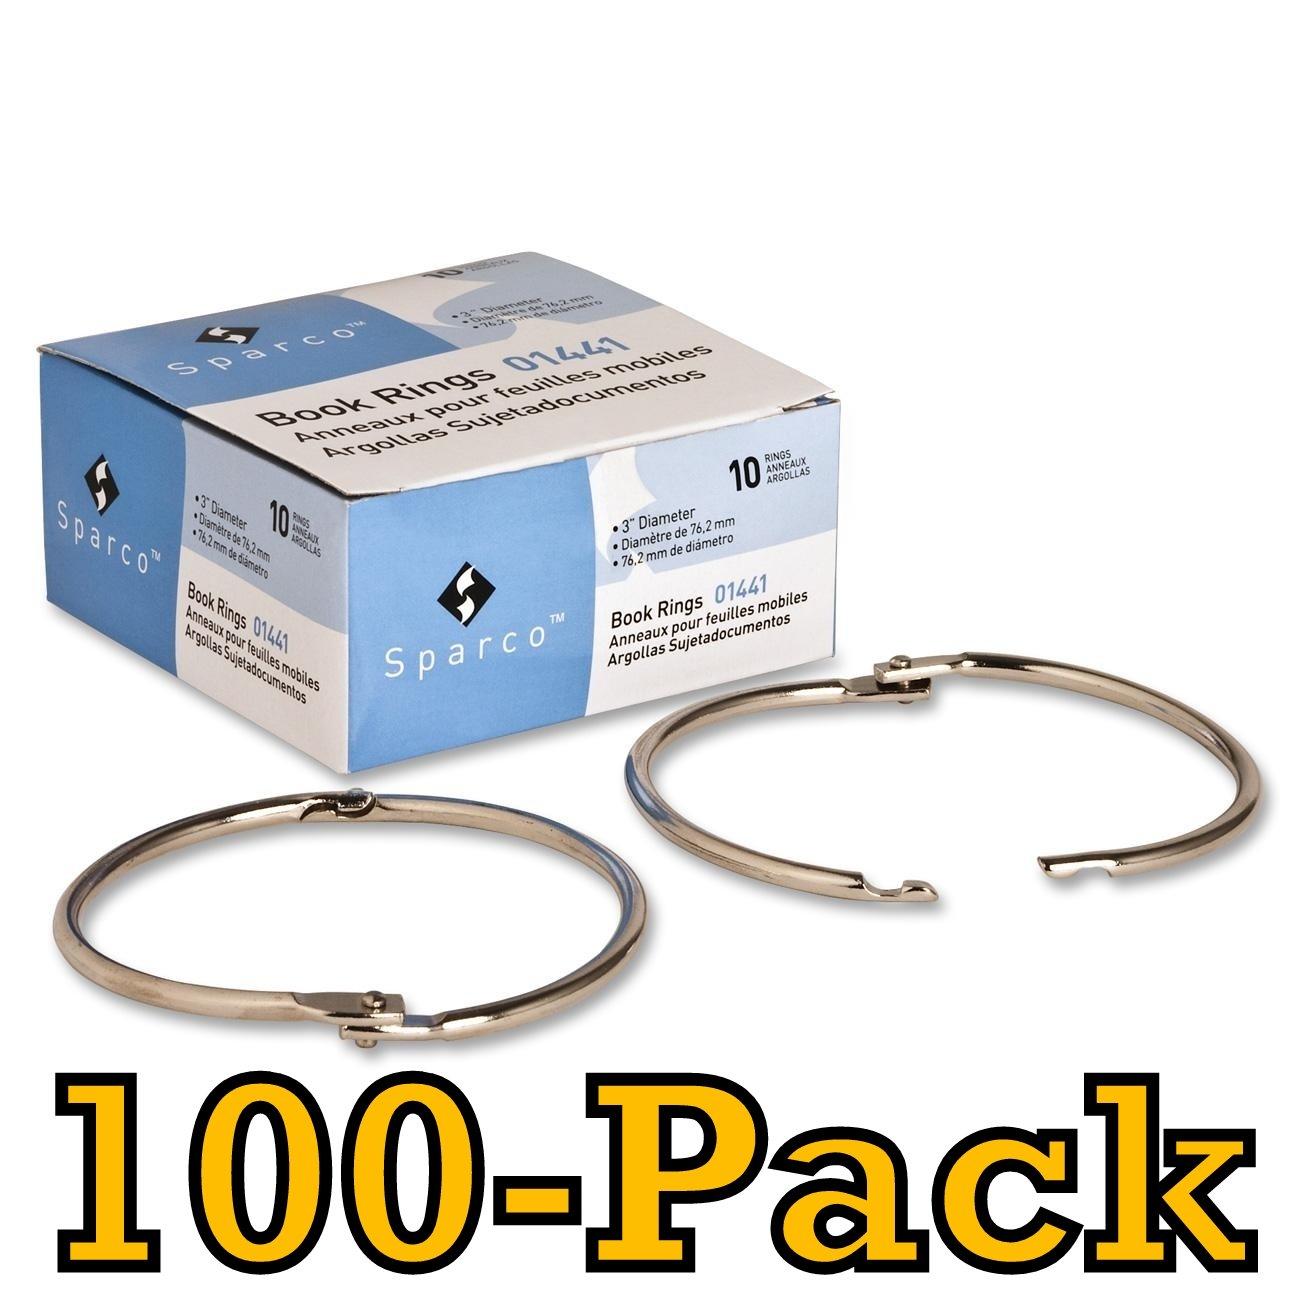 Value Pack of 100 Sparco Book Ring, 3-Inch Diameter, 100 per Box, Silver (SPR01441)